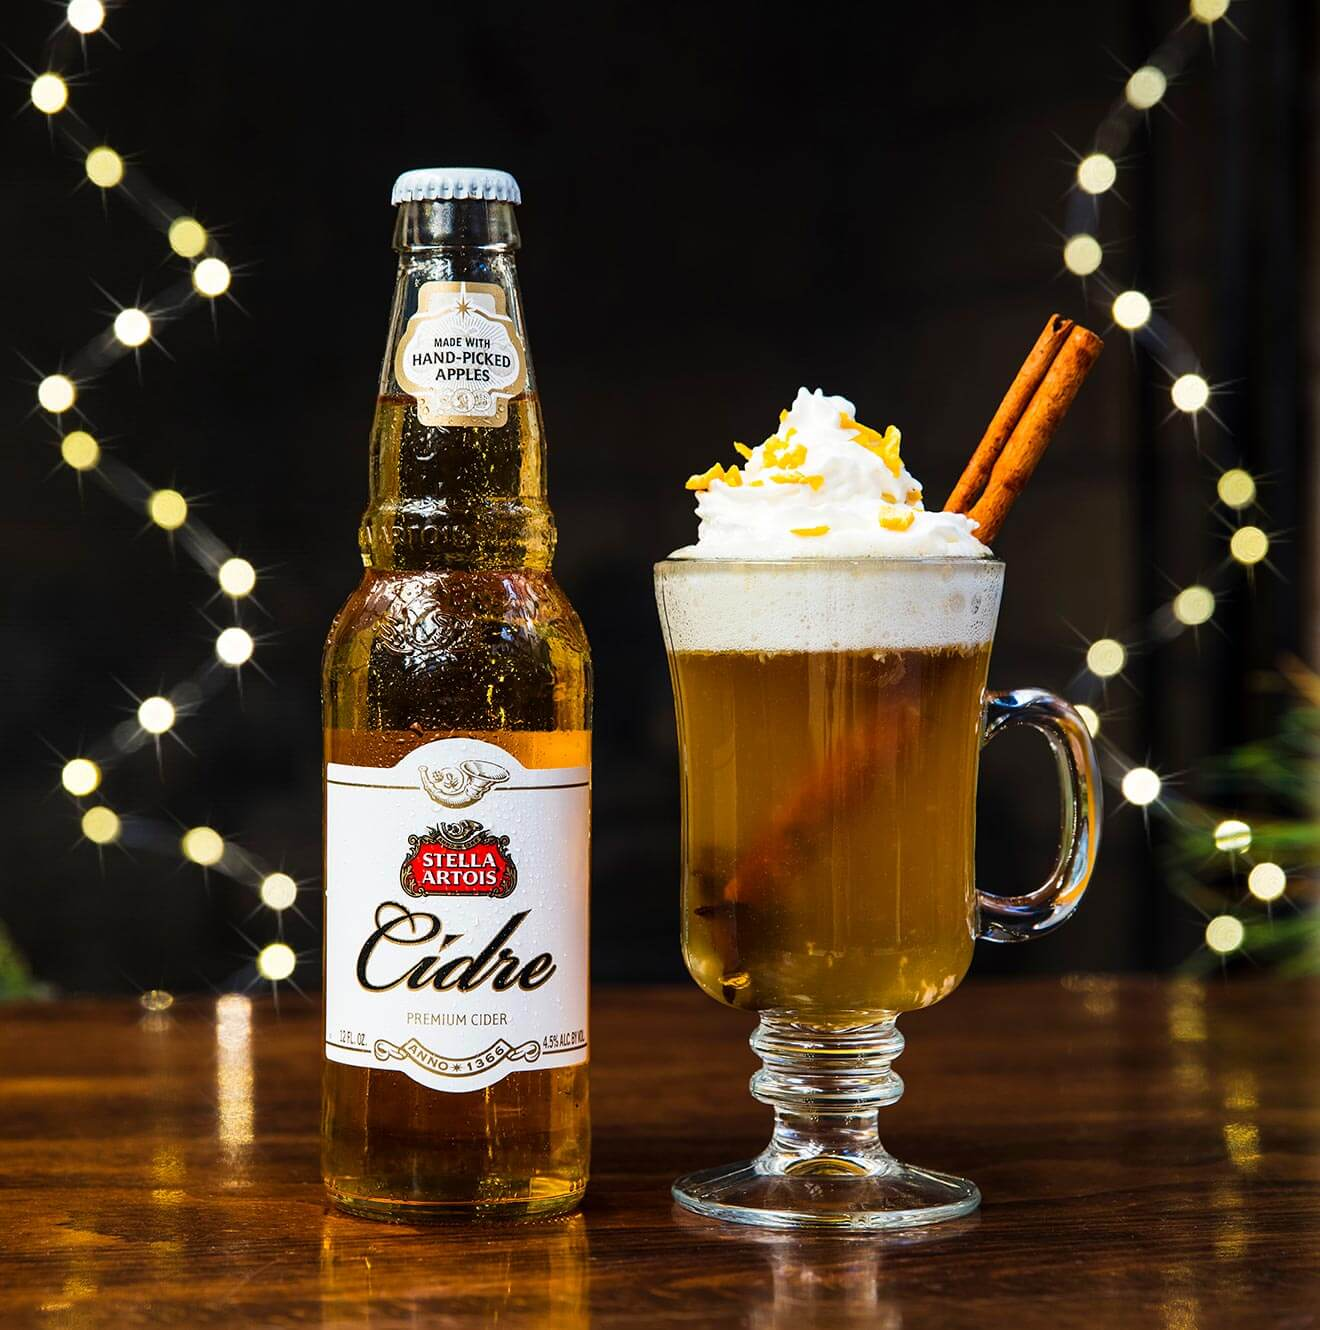 Stella Artois Warm Apple Cidre, bottle and glass